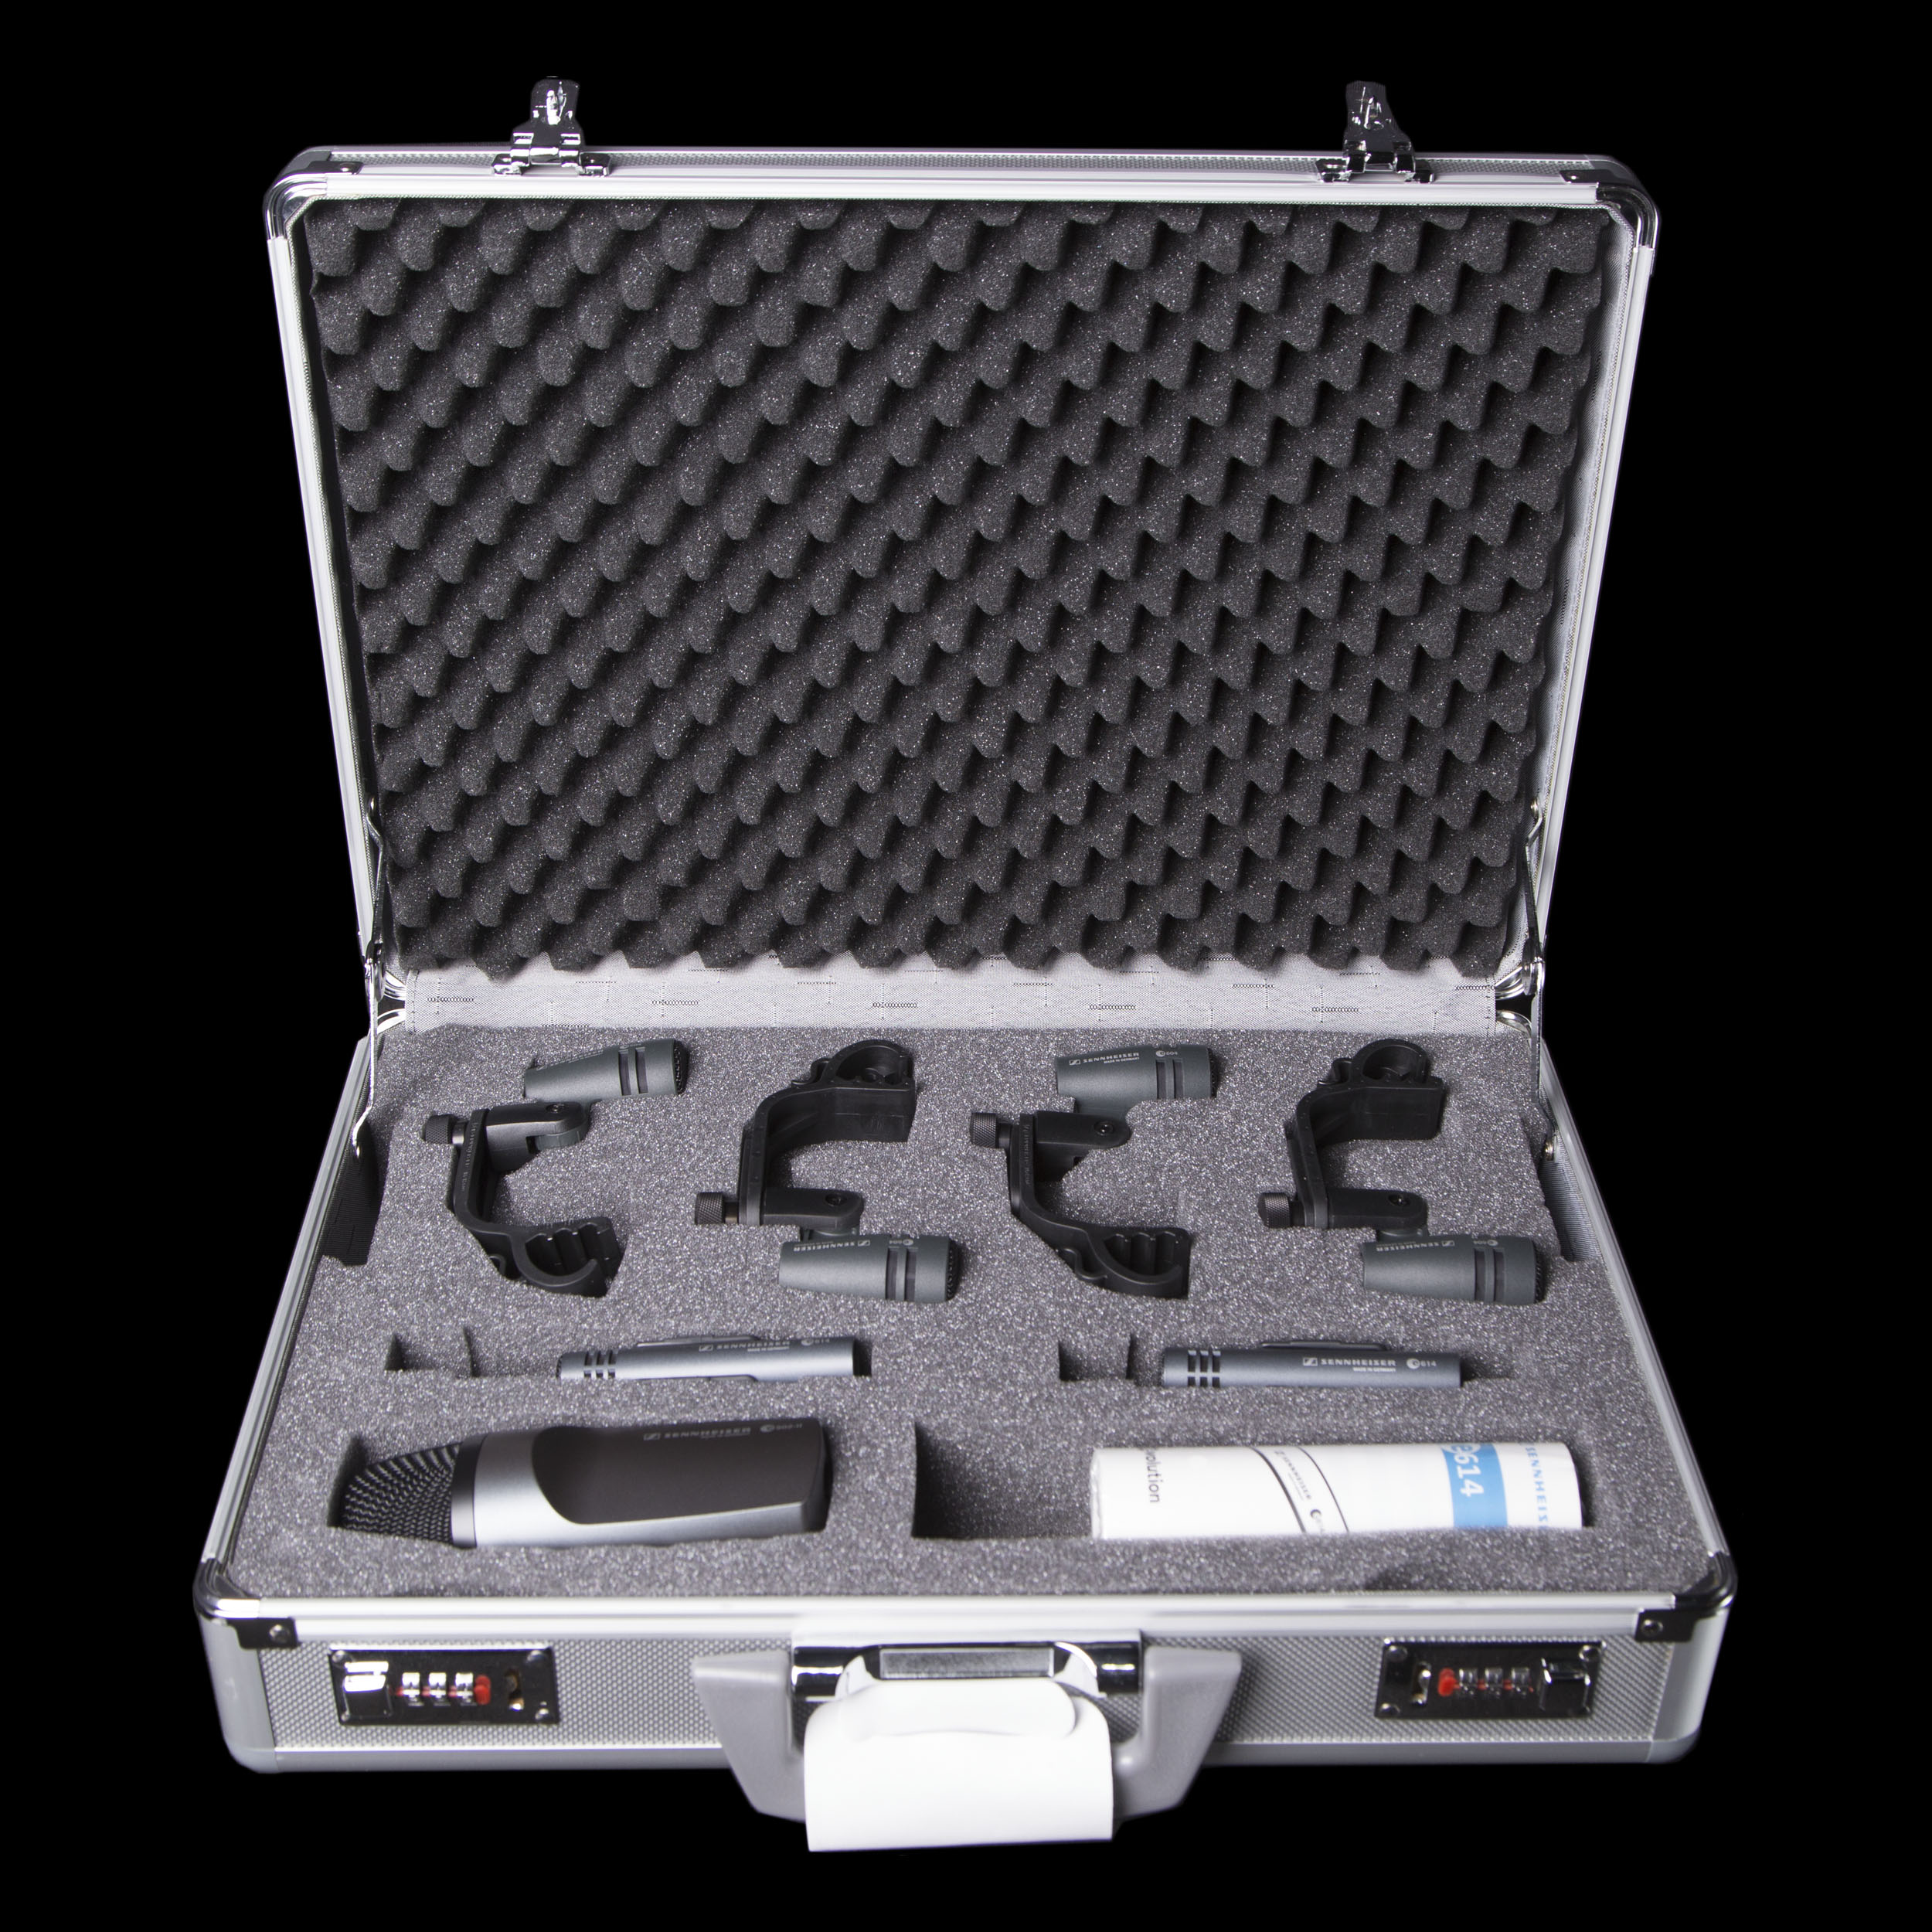 sennheiser e600 drum pack microphone set ebay. Black Bedroom Furniture Sets. Home Design Ideas